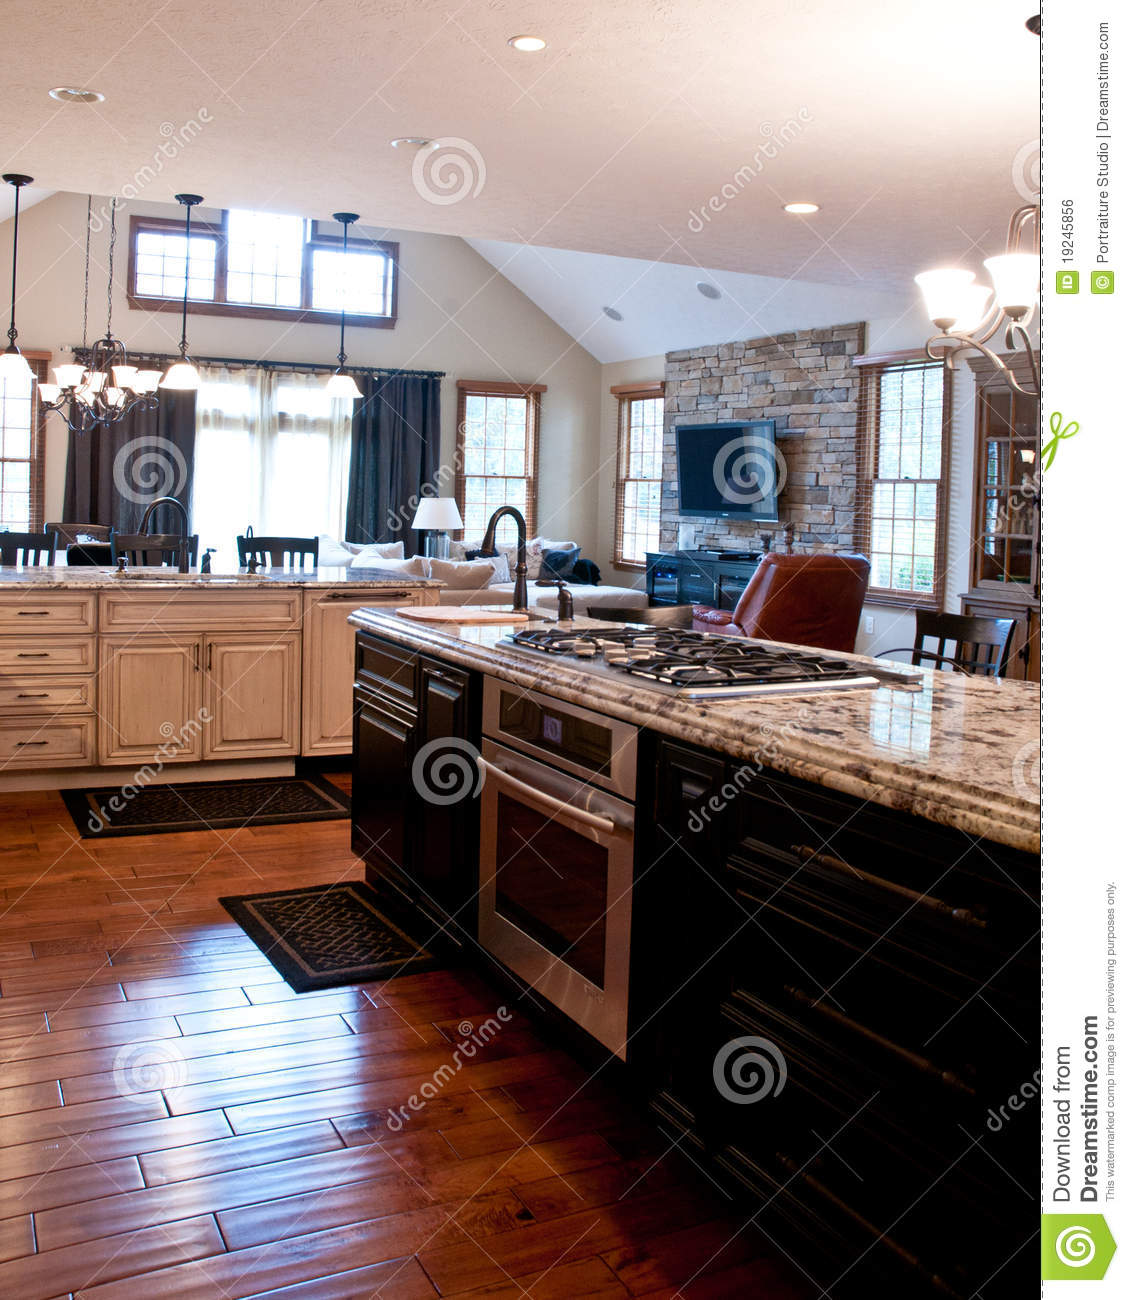 Kitchen Stove Top ~ Designer kitchen oven and stove top stock photo image